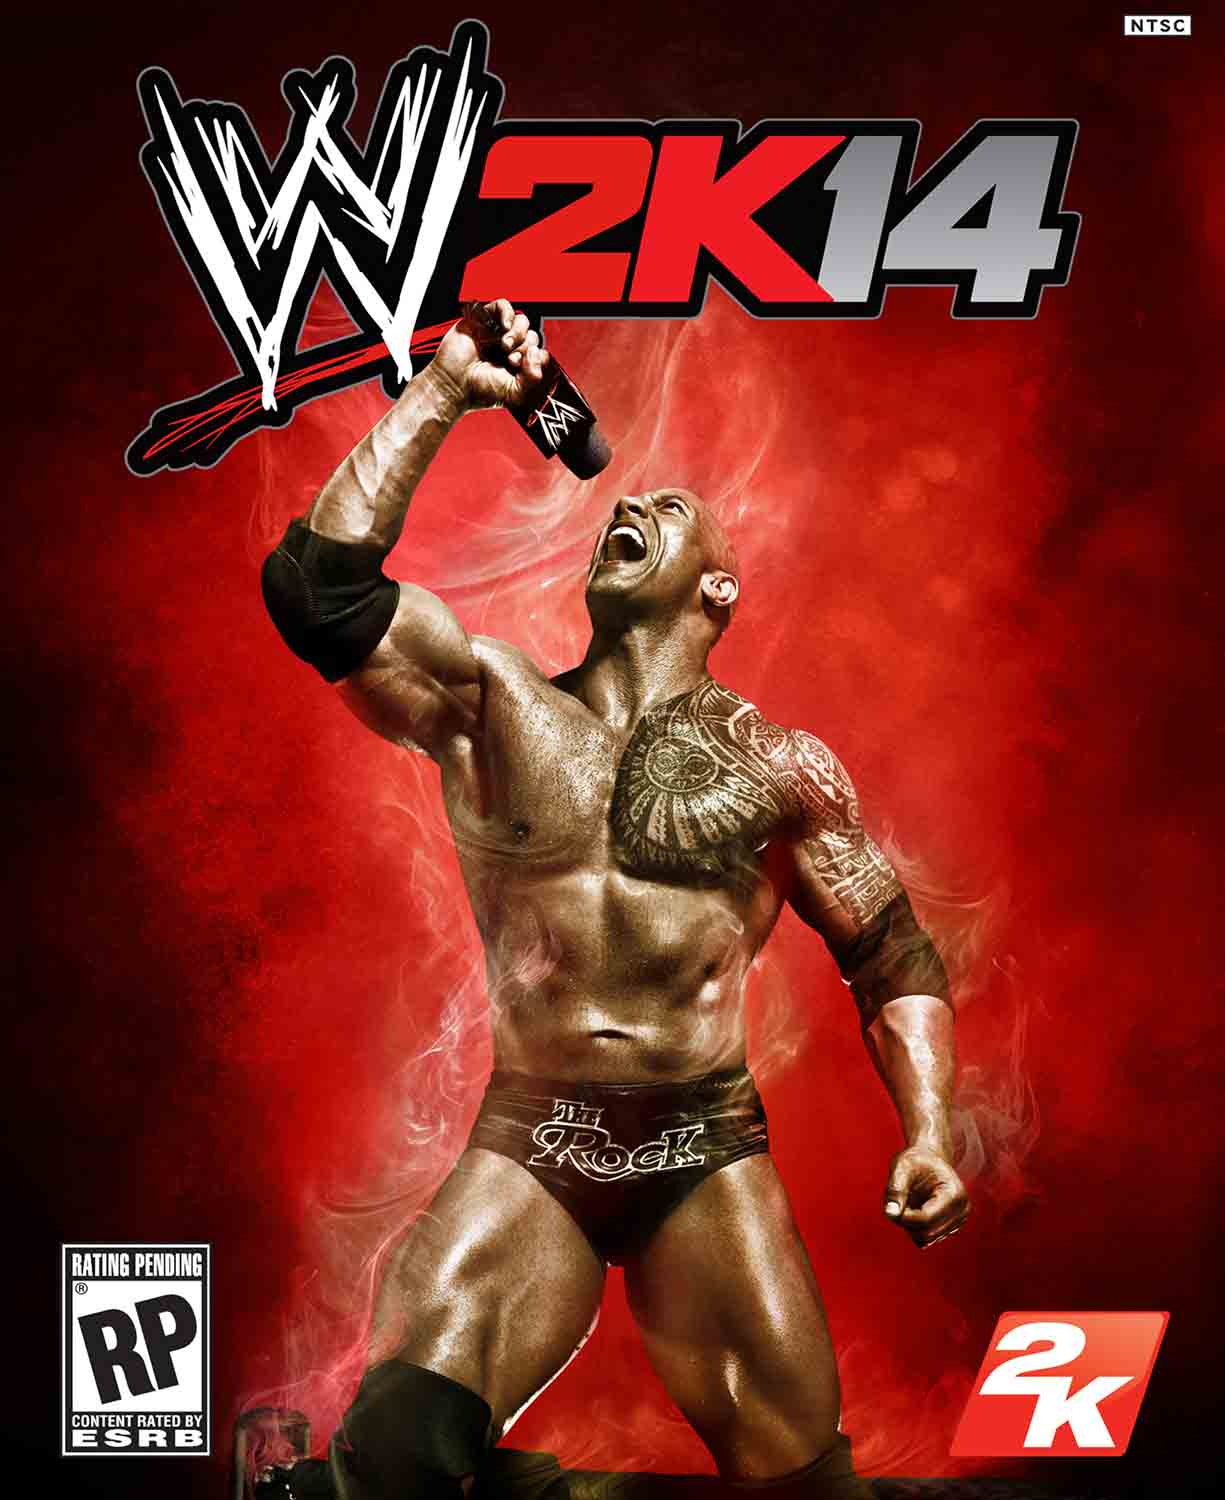 wwe 2k14 hq cover art download, wwe 2k14 cover, the rock wwe 2k14 cover wallpaper, poster, 2013, 2014 wwe game wallpaper